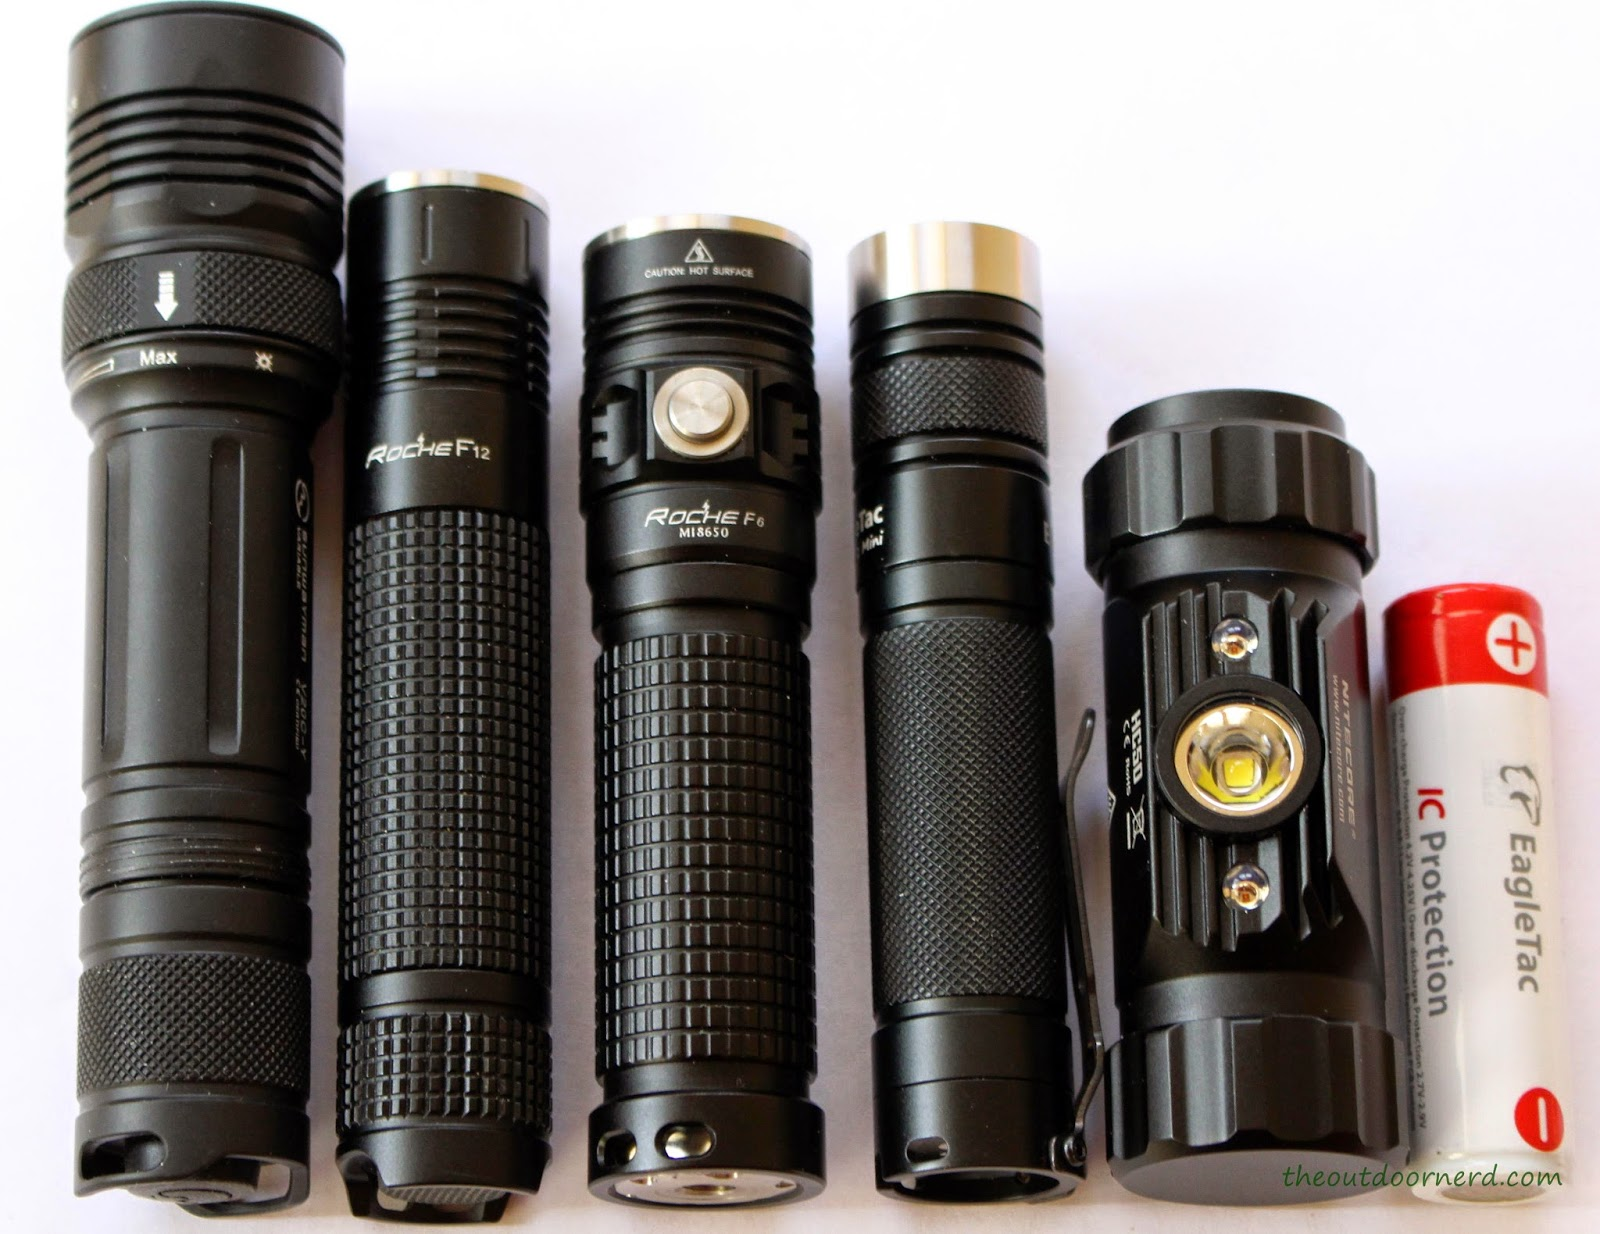 From Left: Sunwayman V20C, Roche F6, EagleTac D25LC2, Nitecore HC50 Headlamp, EagleTac 3100 mAh 18650 li-ion